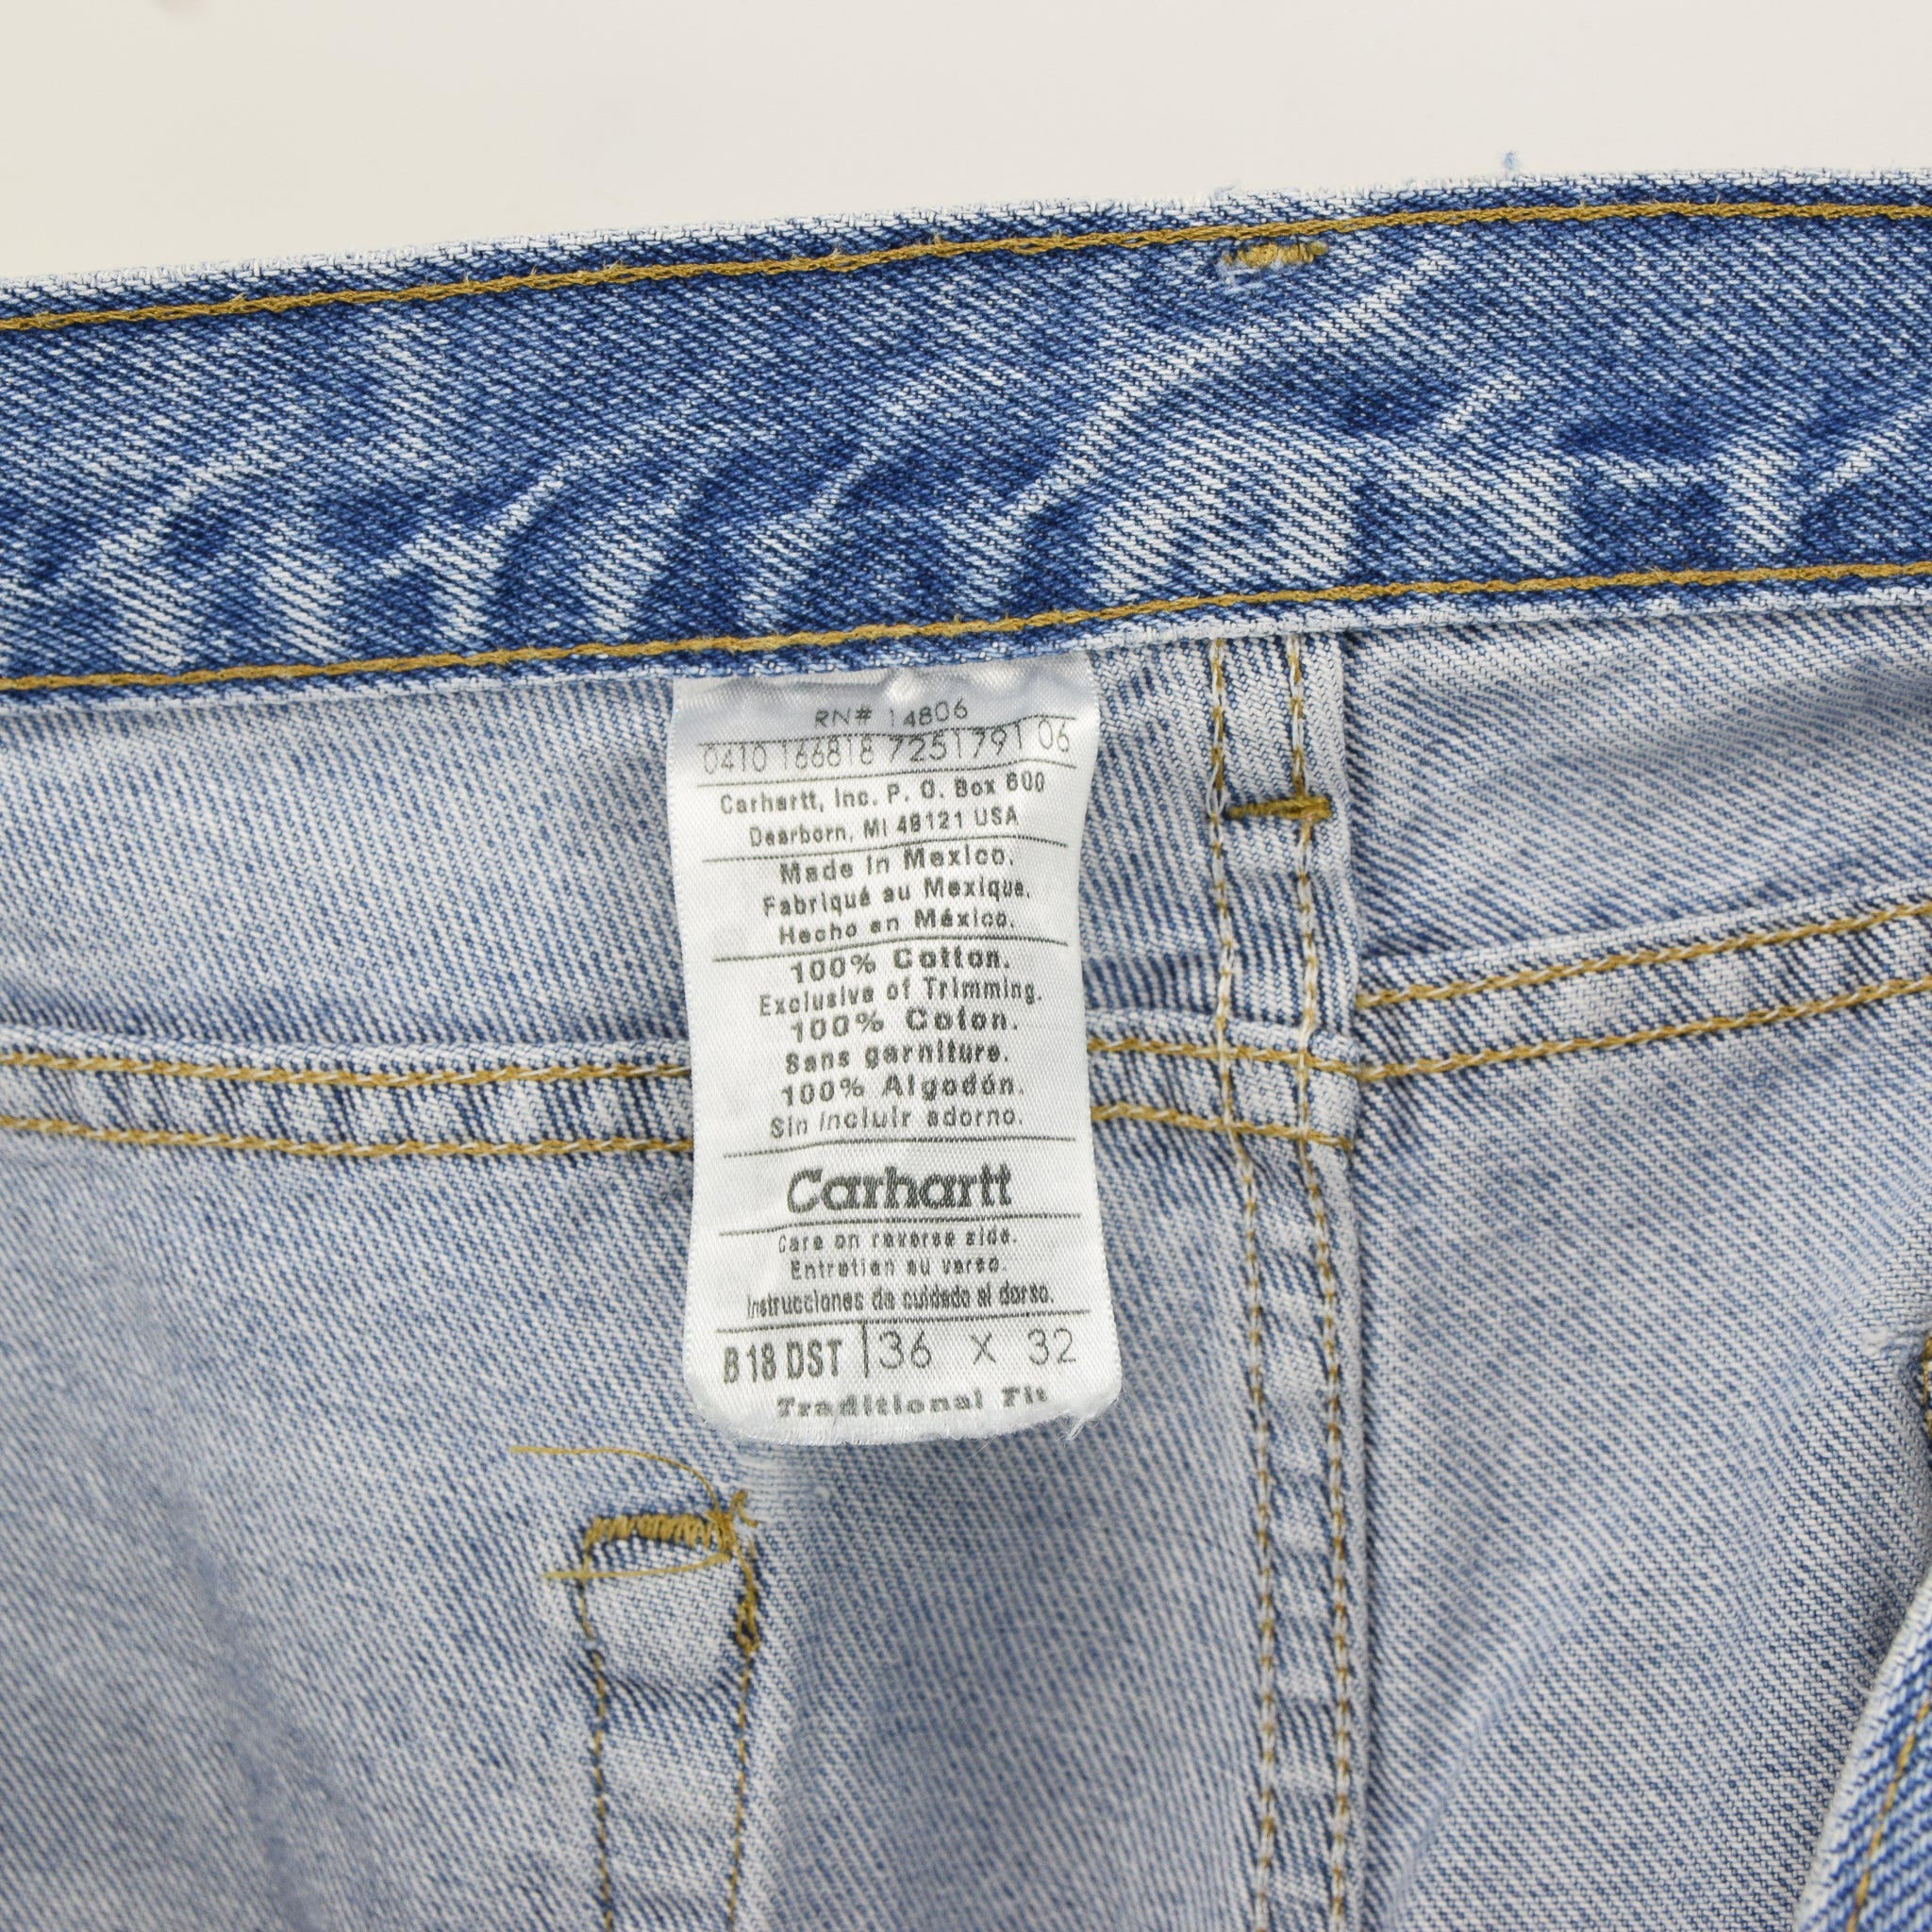 Vintage Carhartt Blue Denim Jeans Work Pants 34 W 32 L label